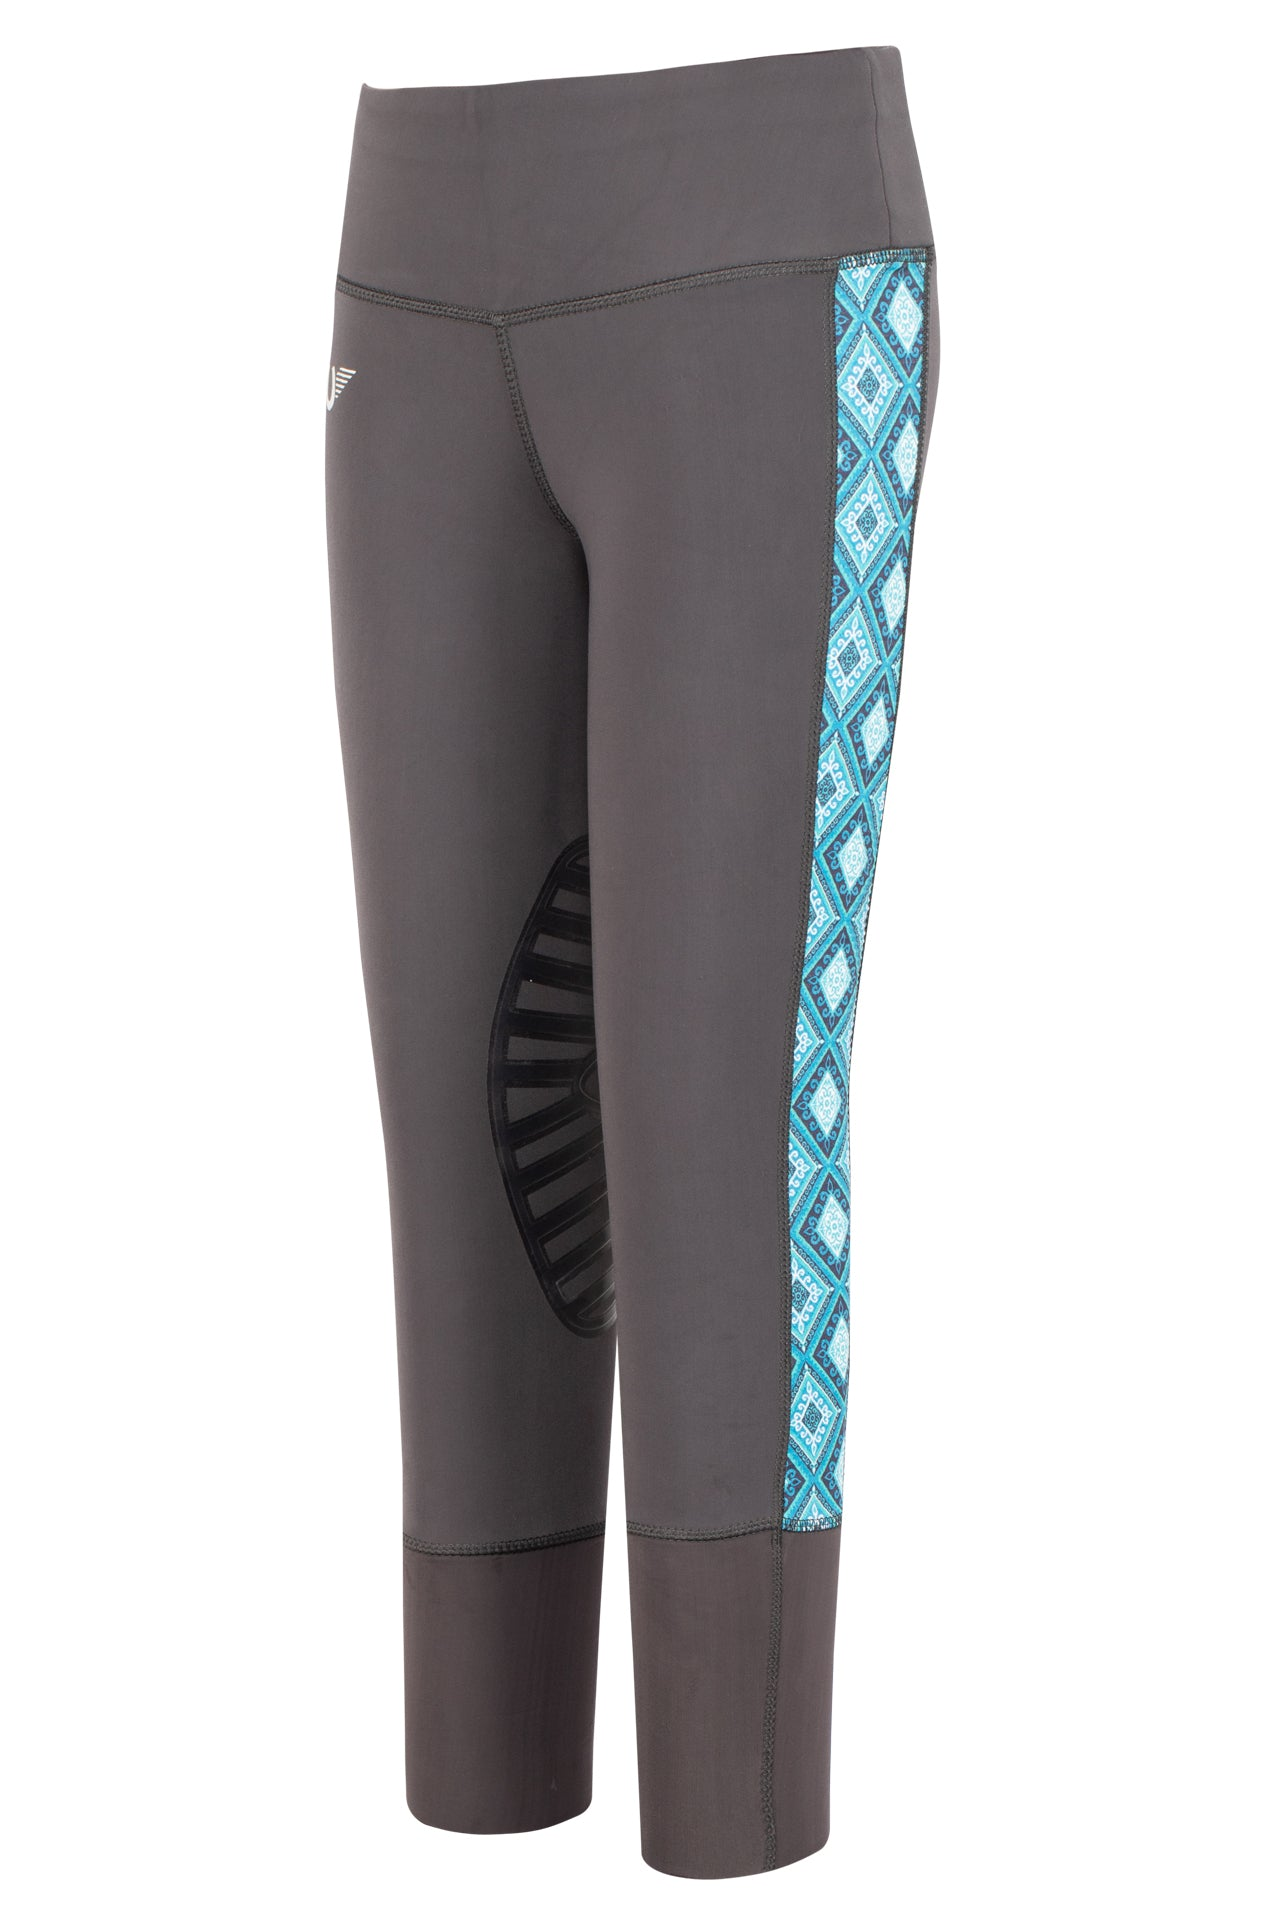 TuffRider Children's Artemis EquiCool Riding Tights - TuffRider - Breeches.com